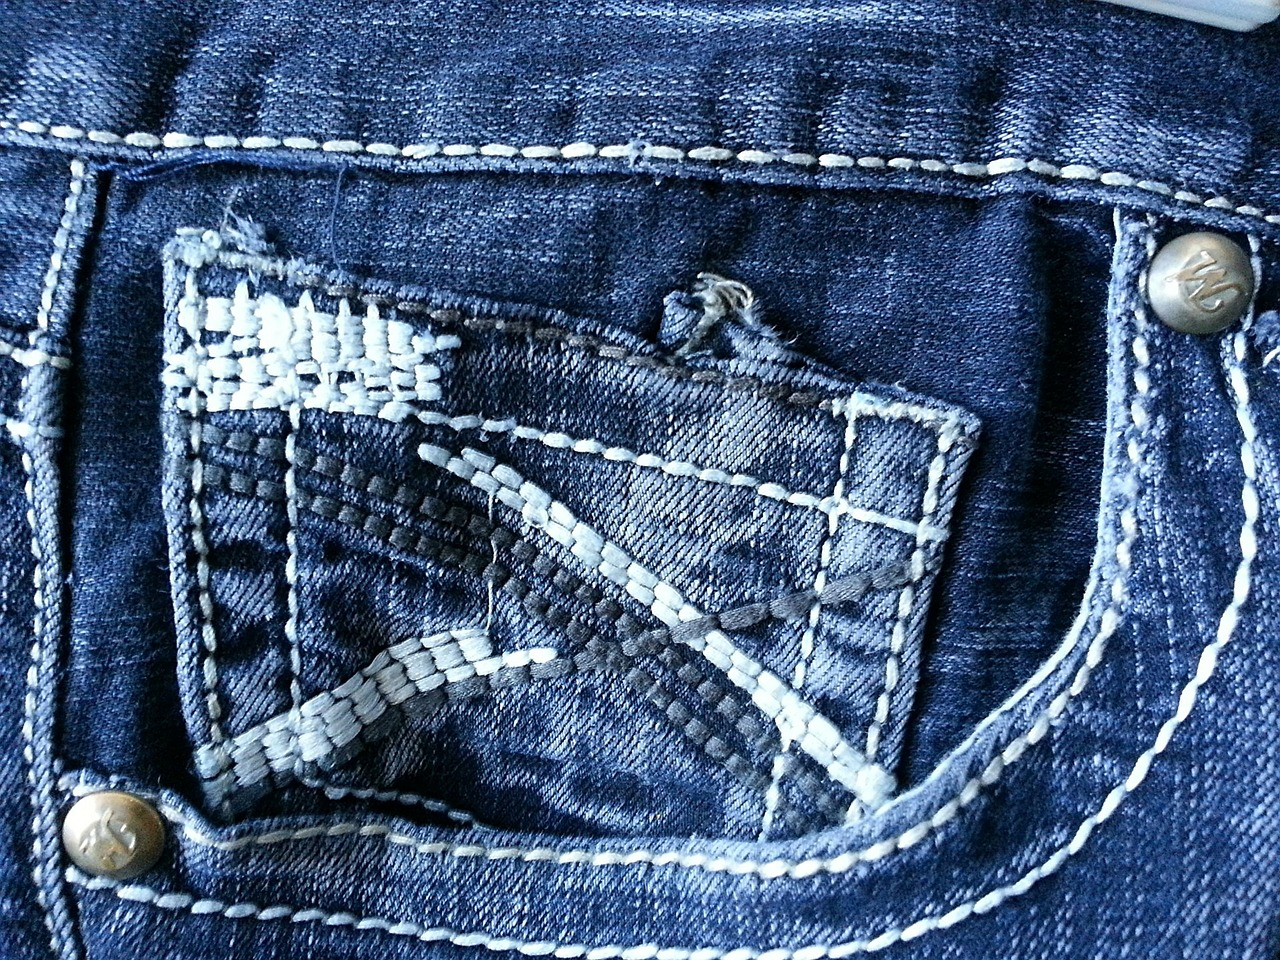 https://pixabay.com/photos/jeans-pocket-clothing-attire-blue-315173/